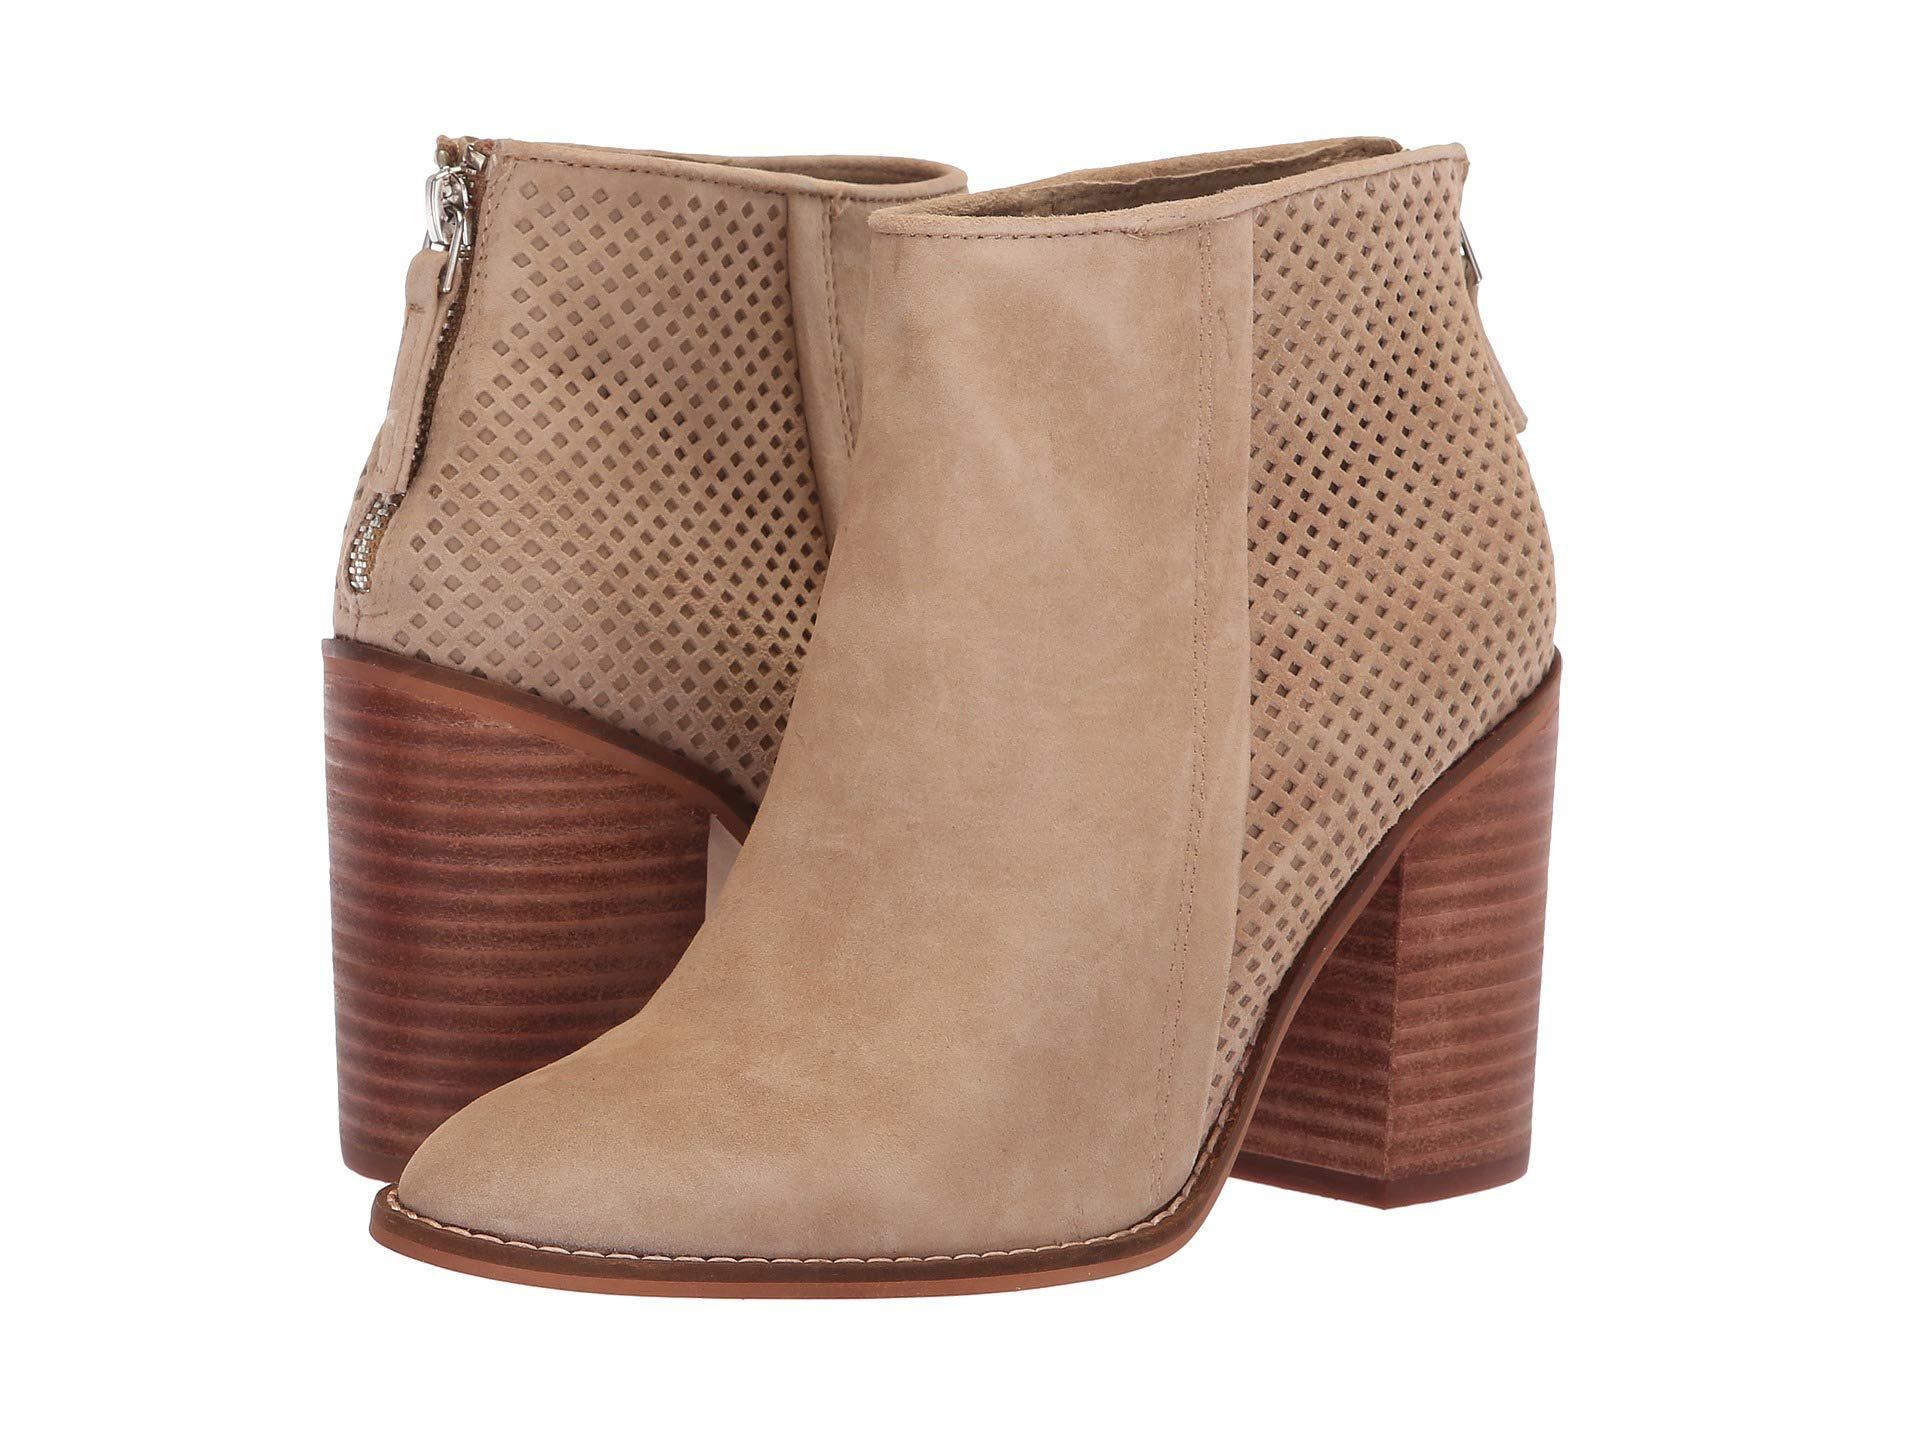 4107573e001 Lyst - Steve Madden Replay Bootie in Brown - Save 44%